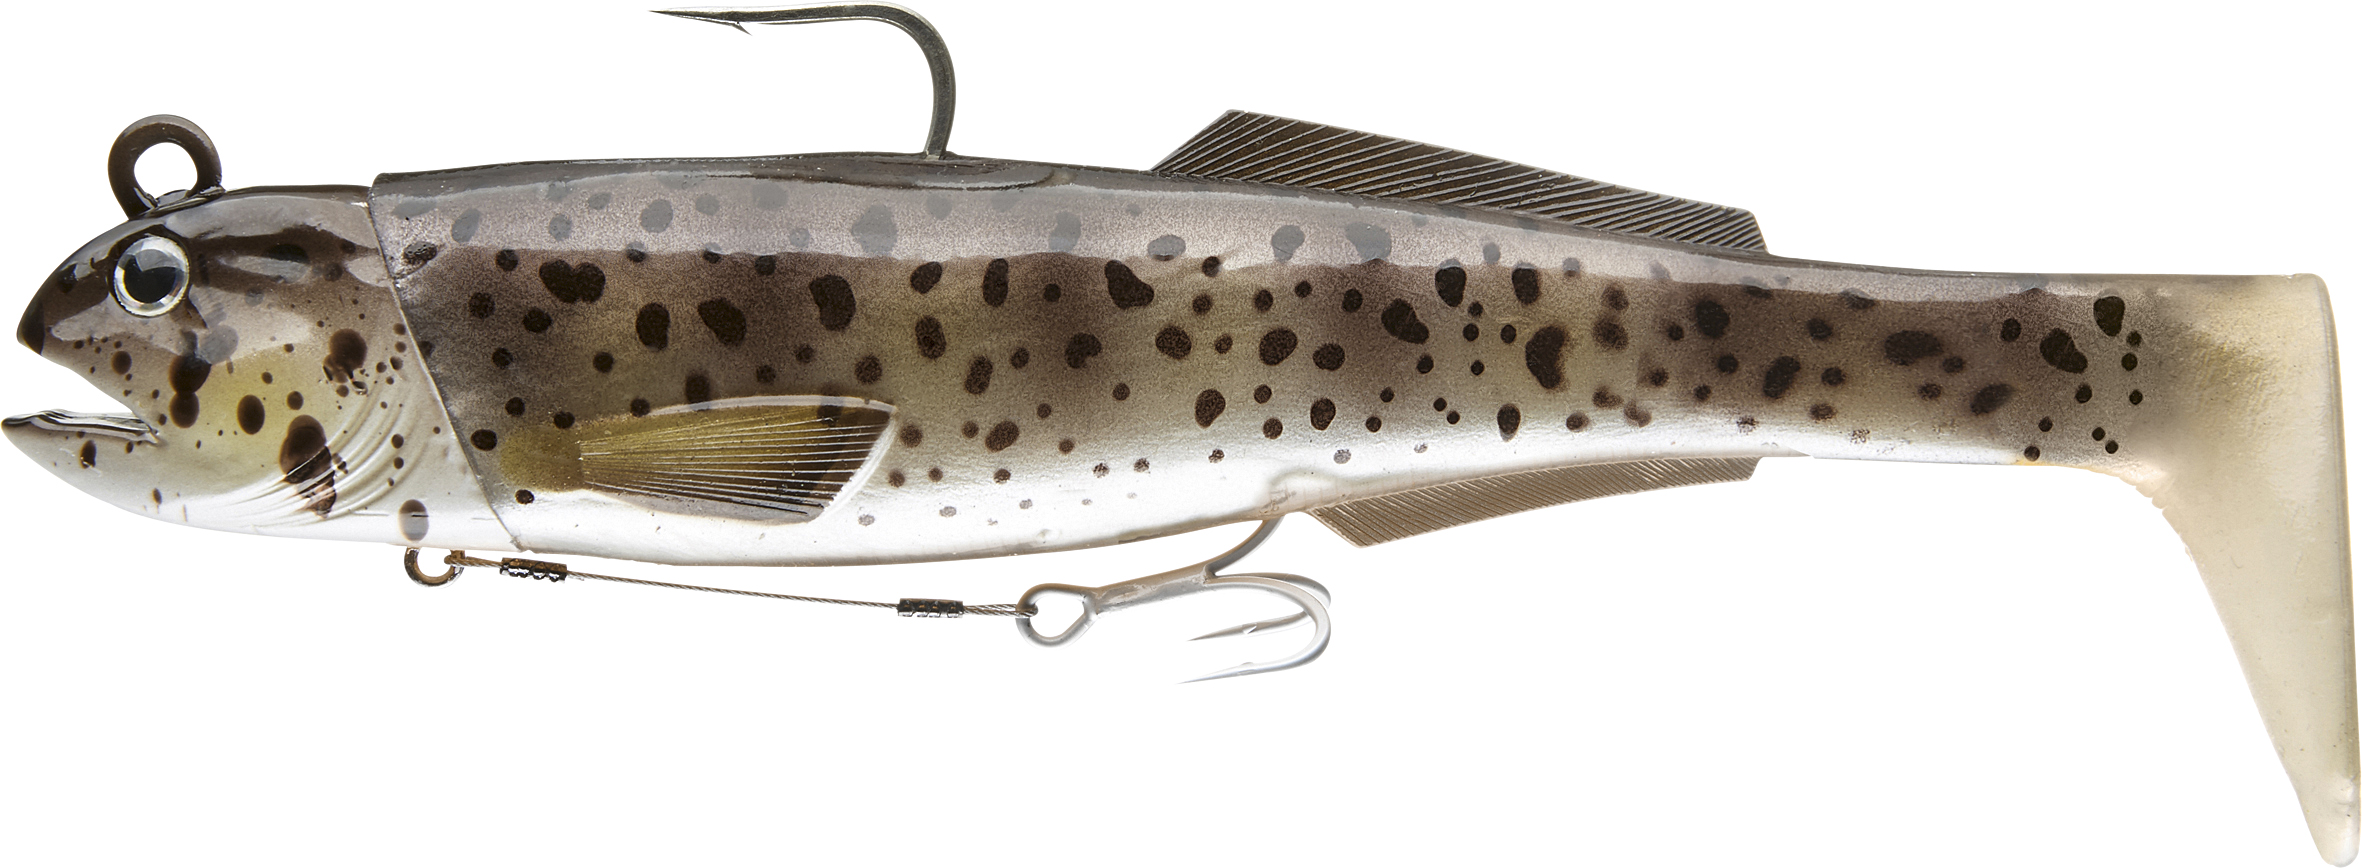 Daiwa-Shad D-Wolf Duckfin SW Farbe Spotted Wolf-1 - Gerlinger.de